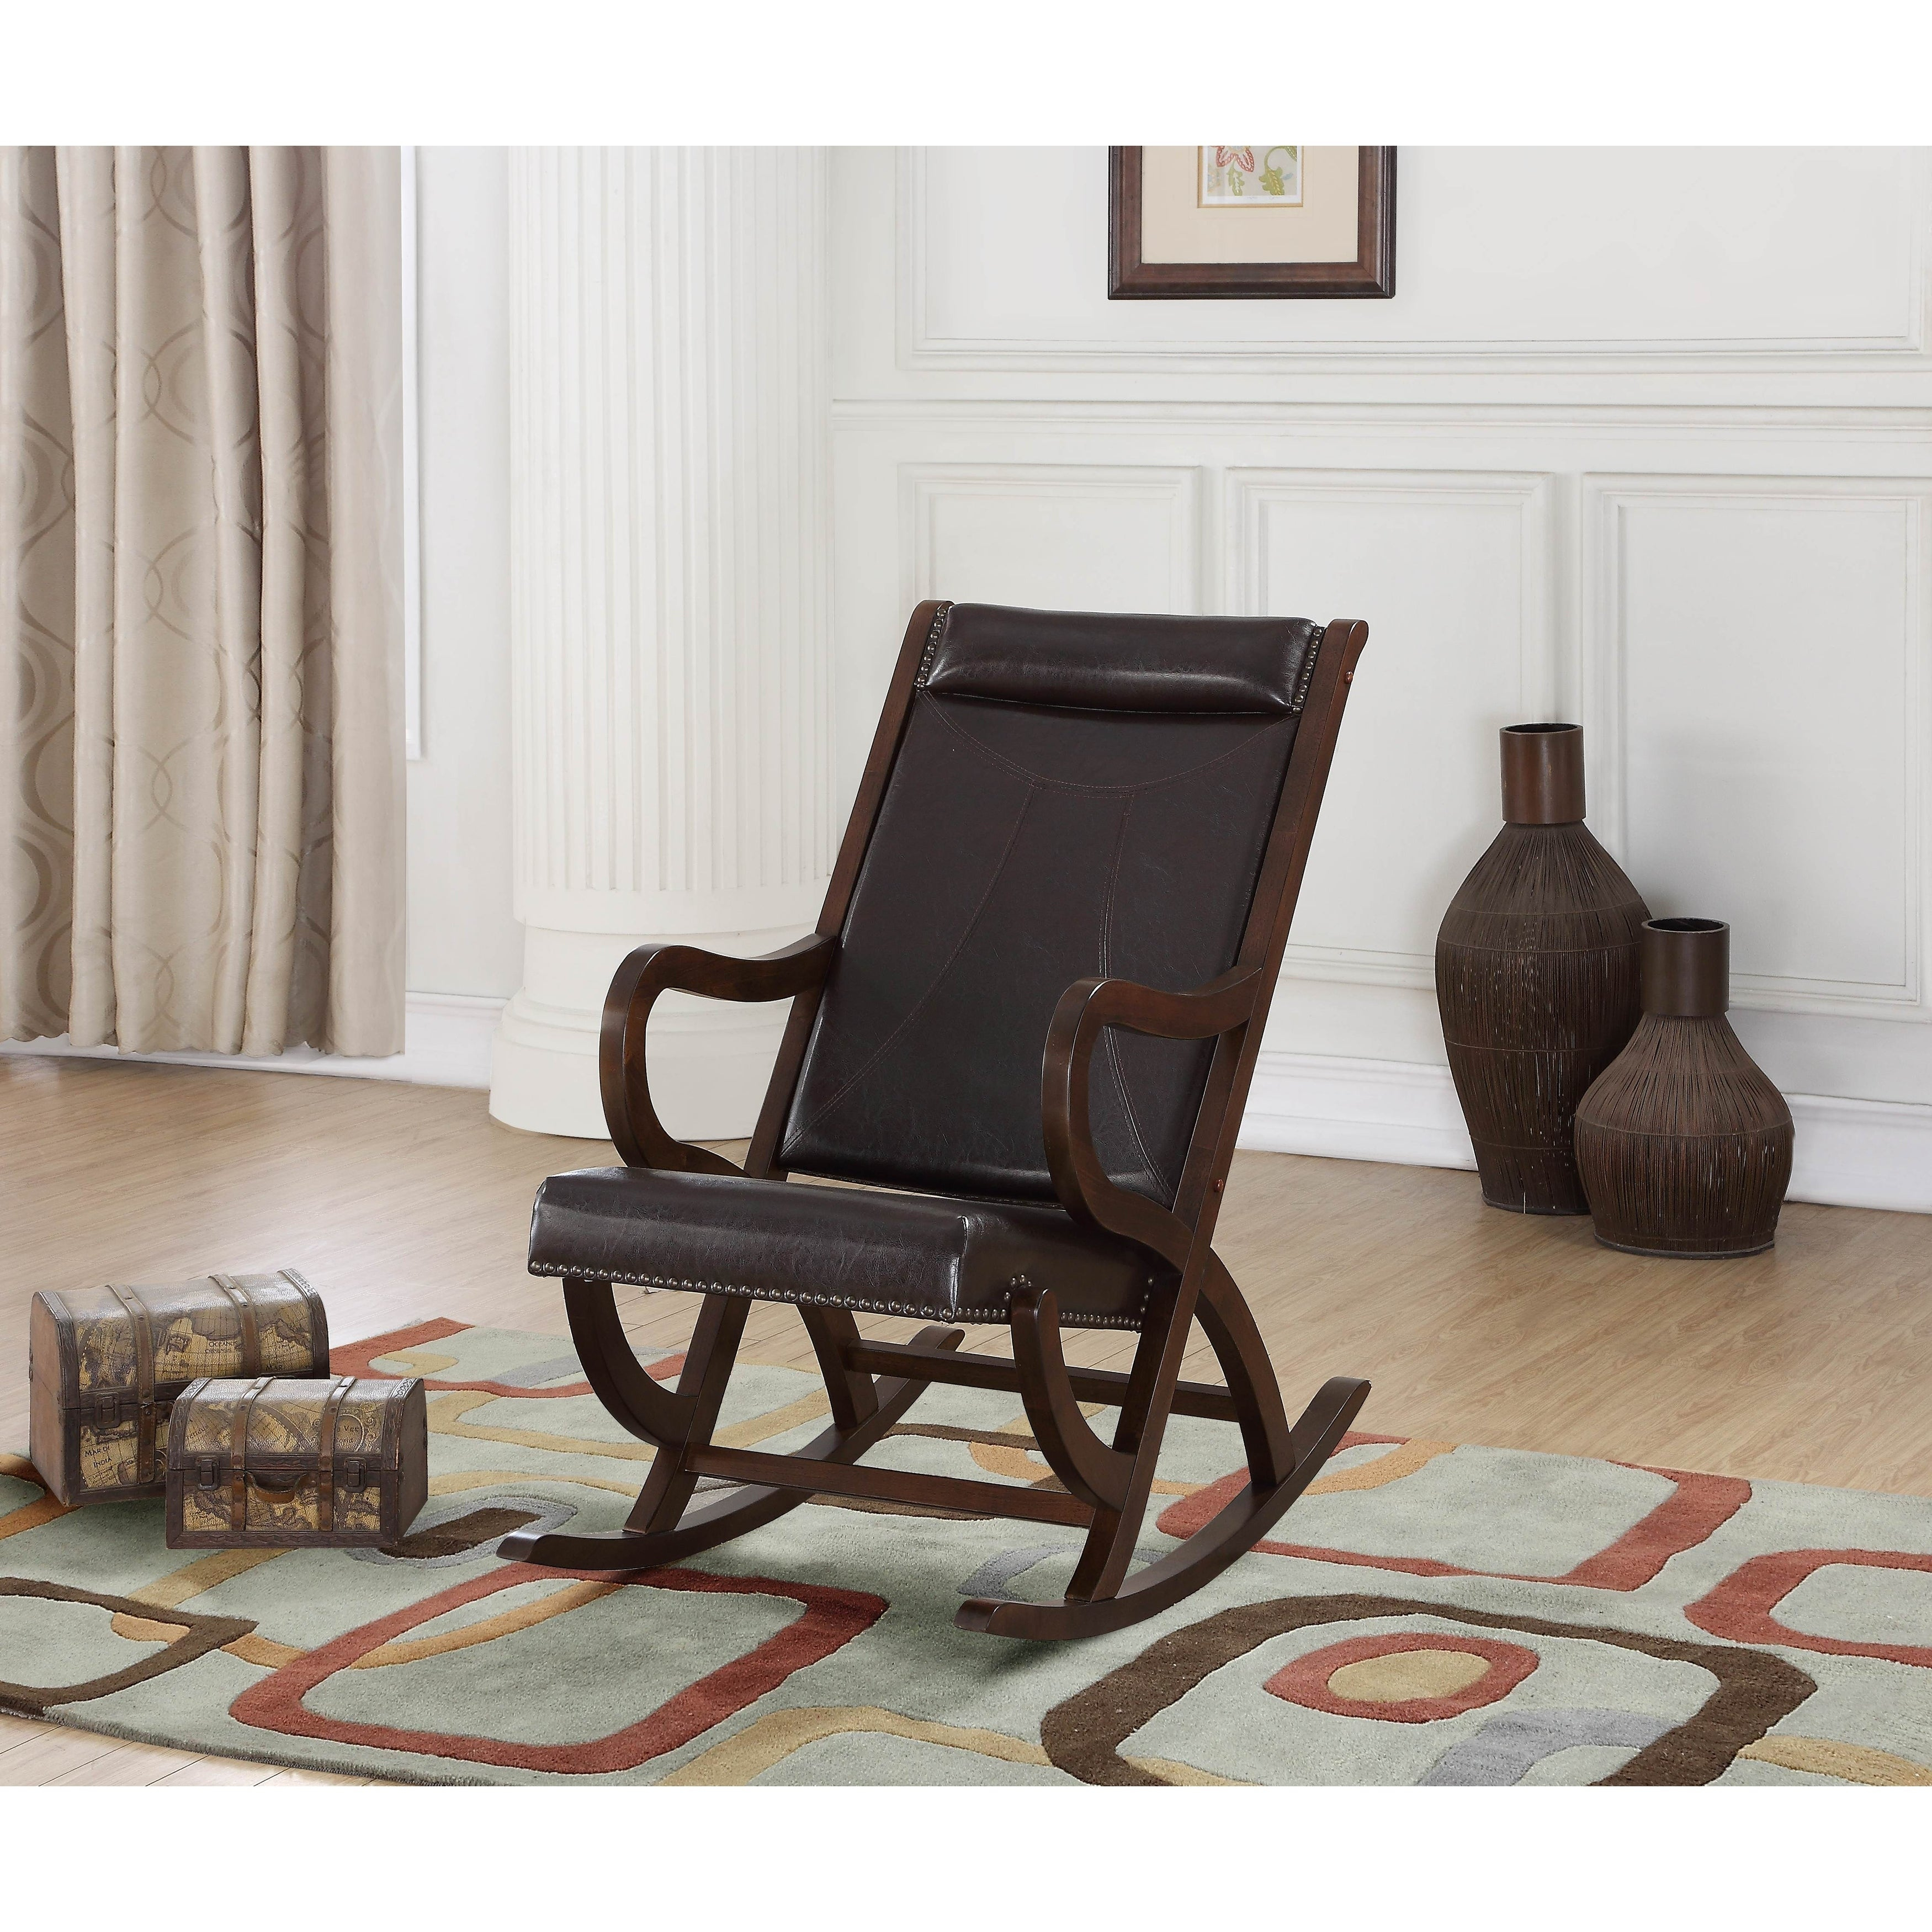 Carbon Loft Ariel Rocking Chair In Espresso Pu And Walnut Throughout Espresso Brown Rocking Chairs (#7 of 20)